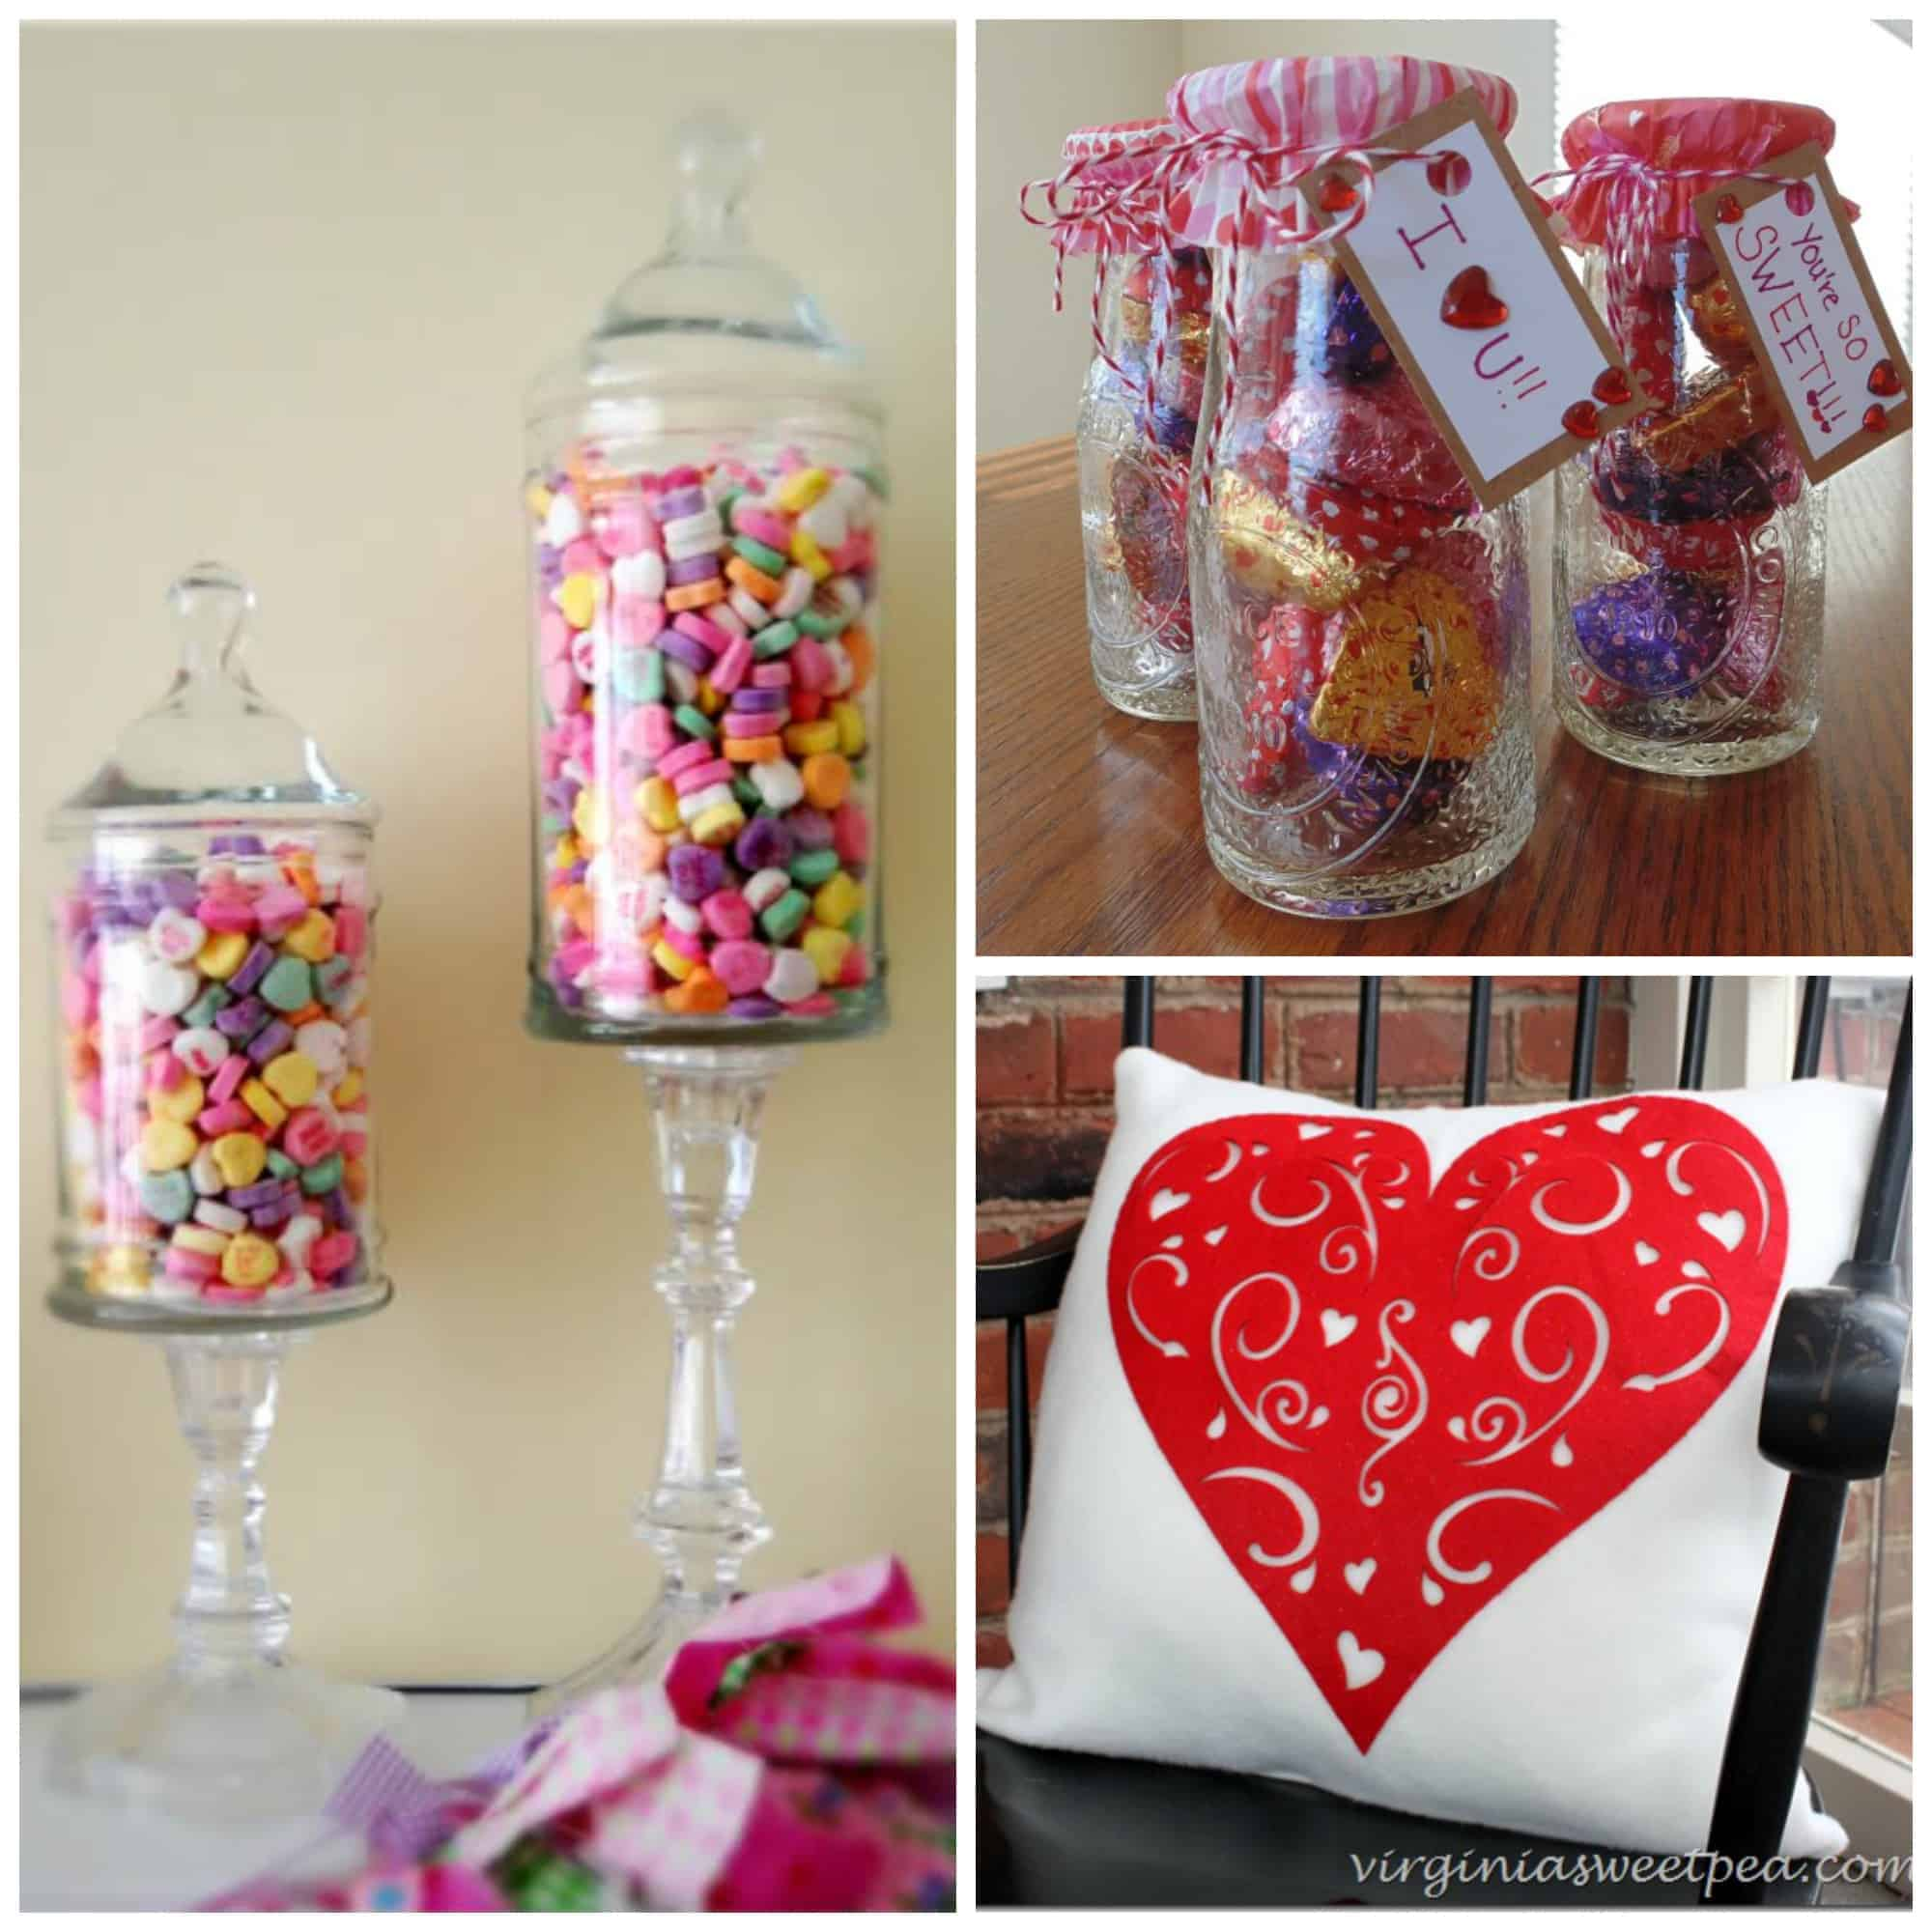 Valentine Home Decorations: 10 Dollar Store Valentines Day Decor Hacks That Are Easy